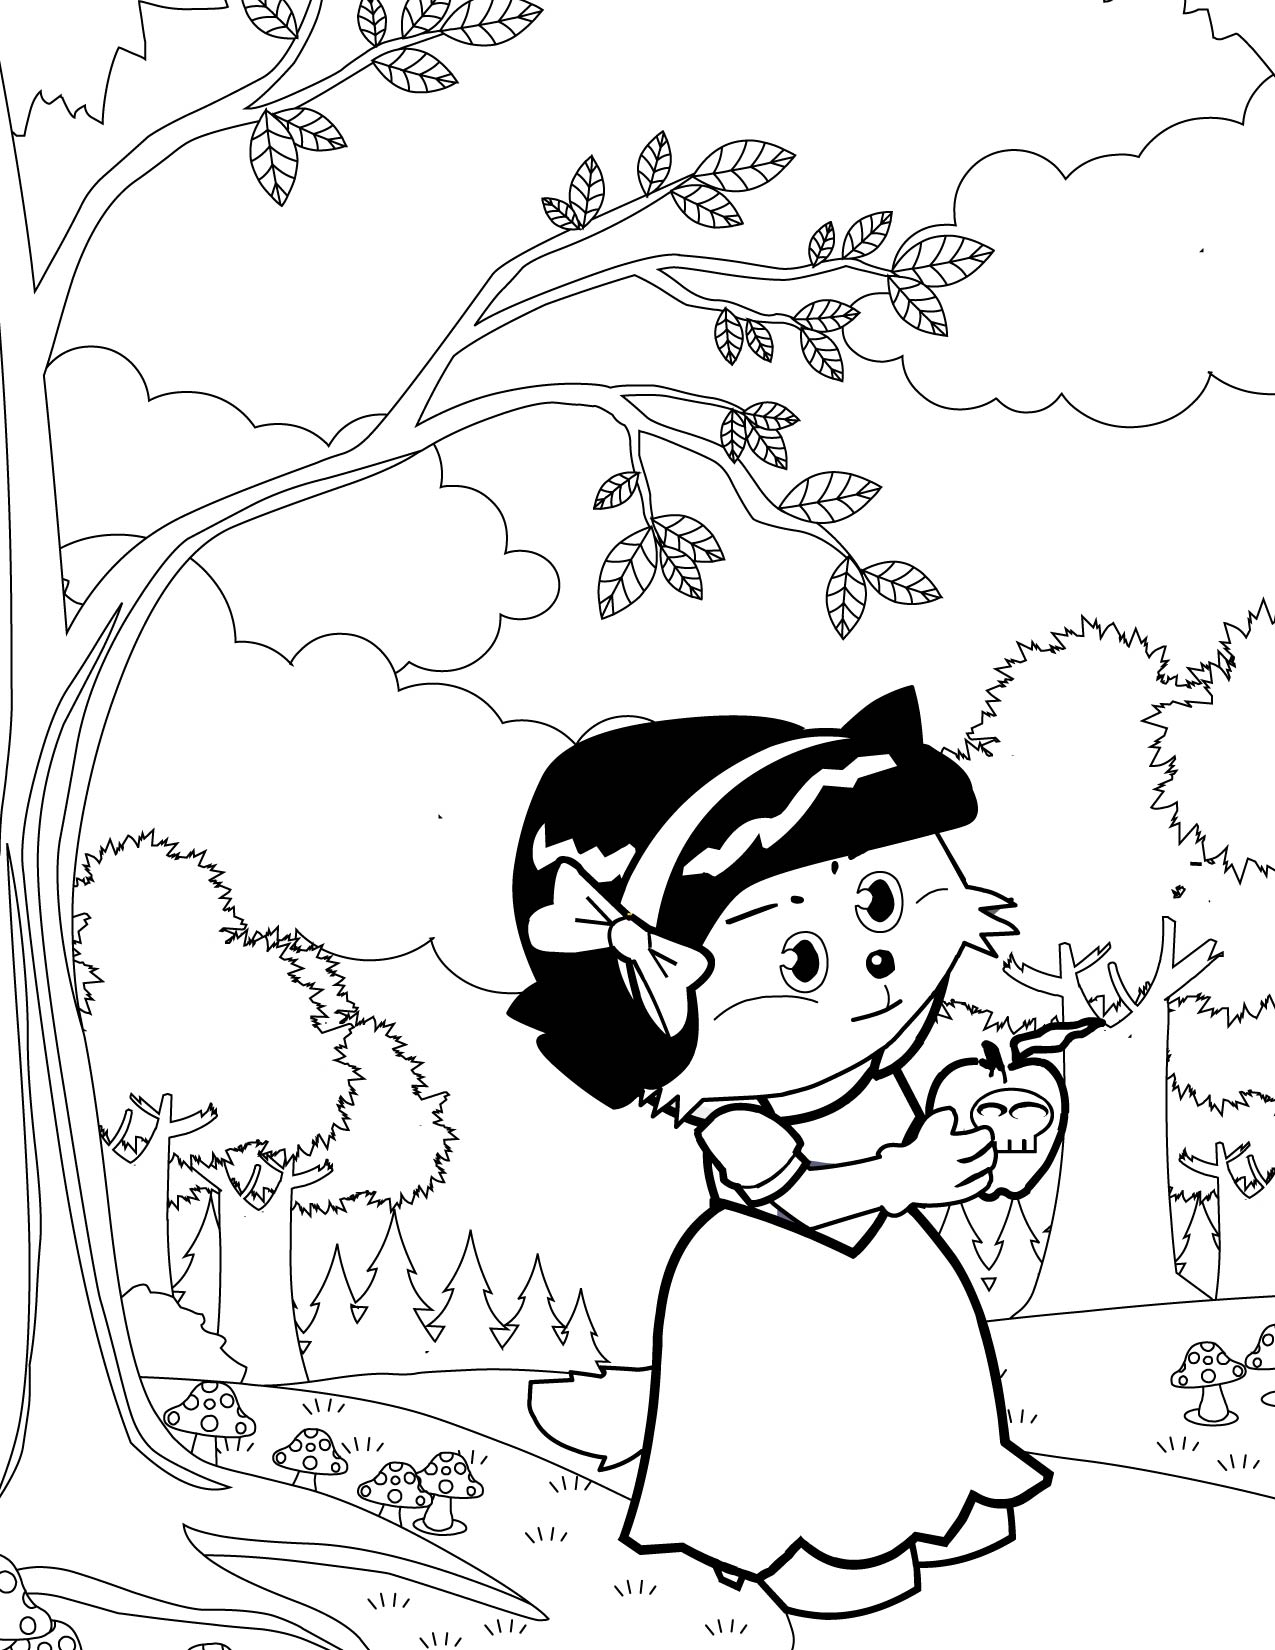 snow white coloring page handipoints